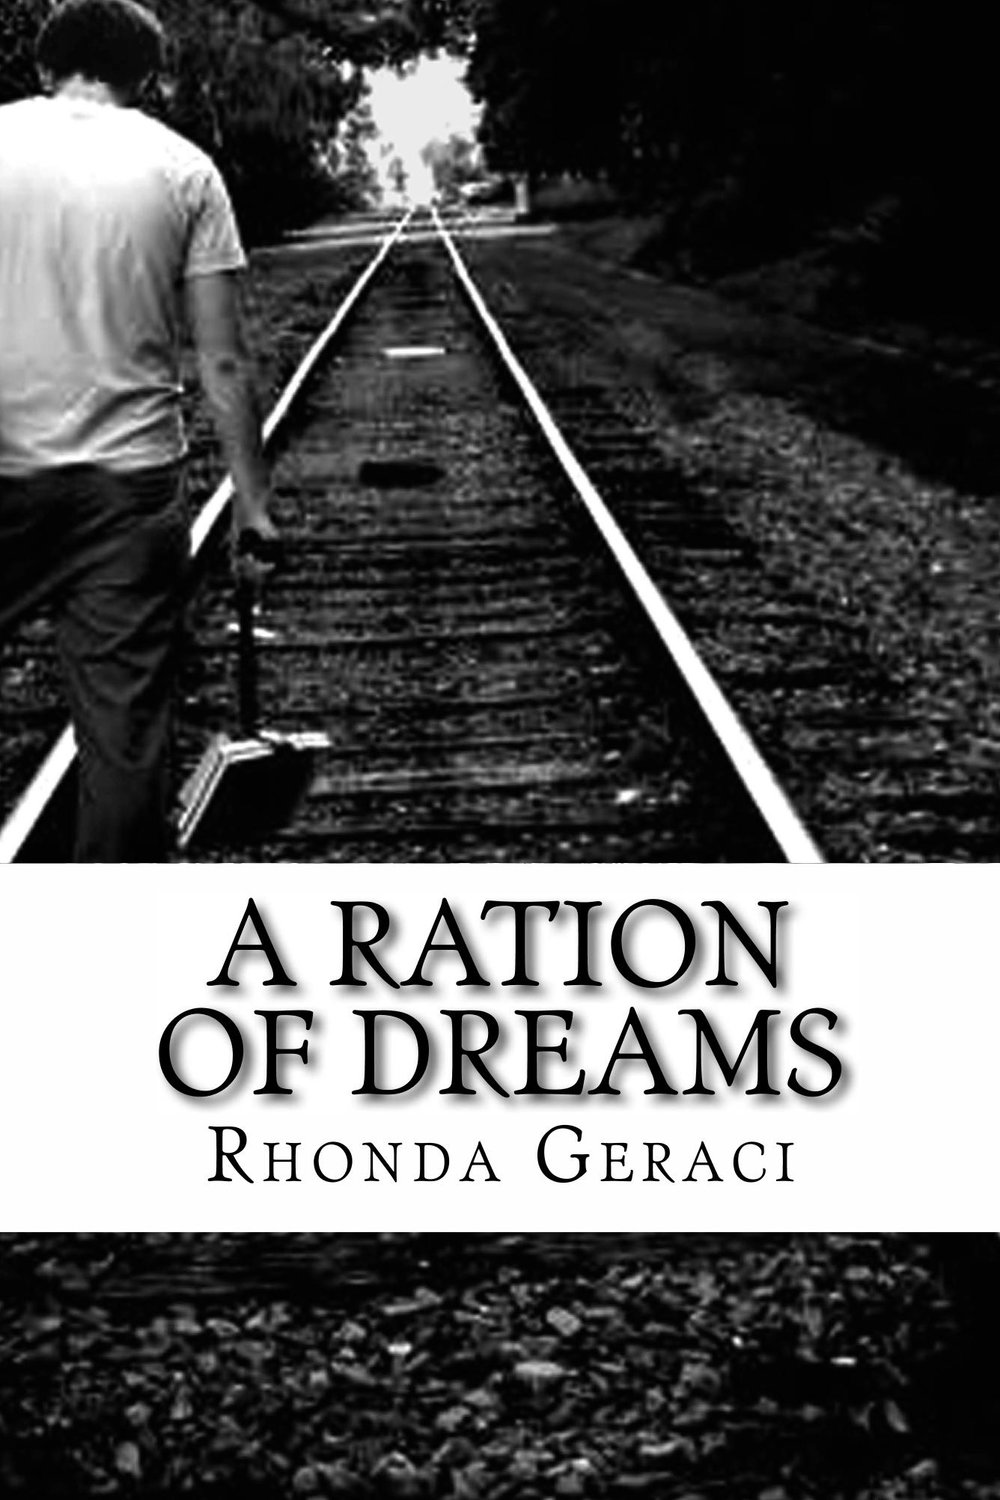 Ration_of_Dreams_Cover_for_Kindle.jpg